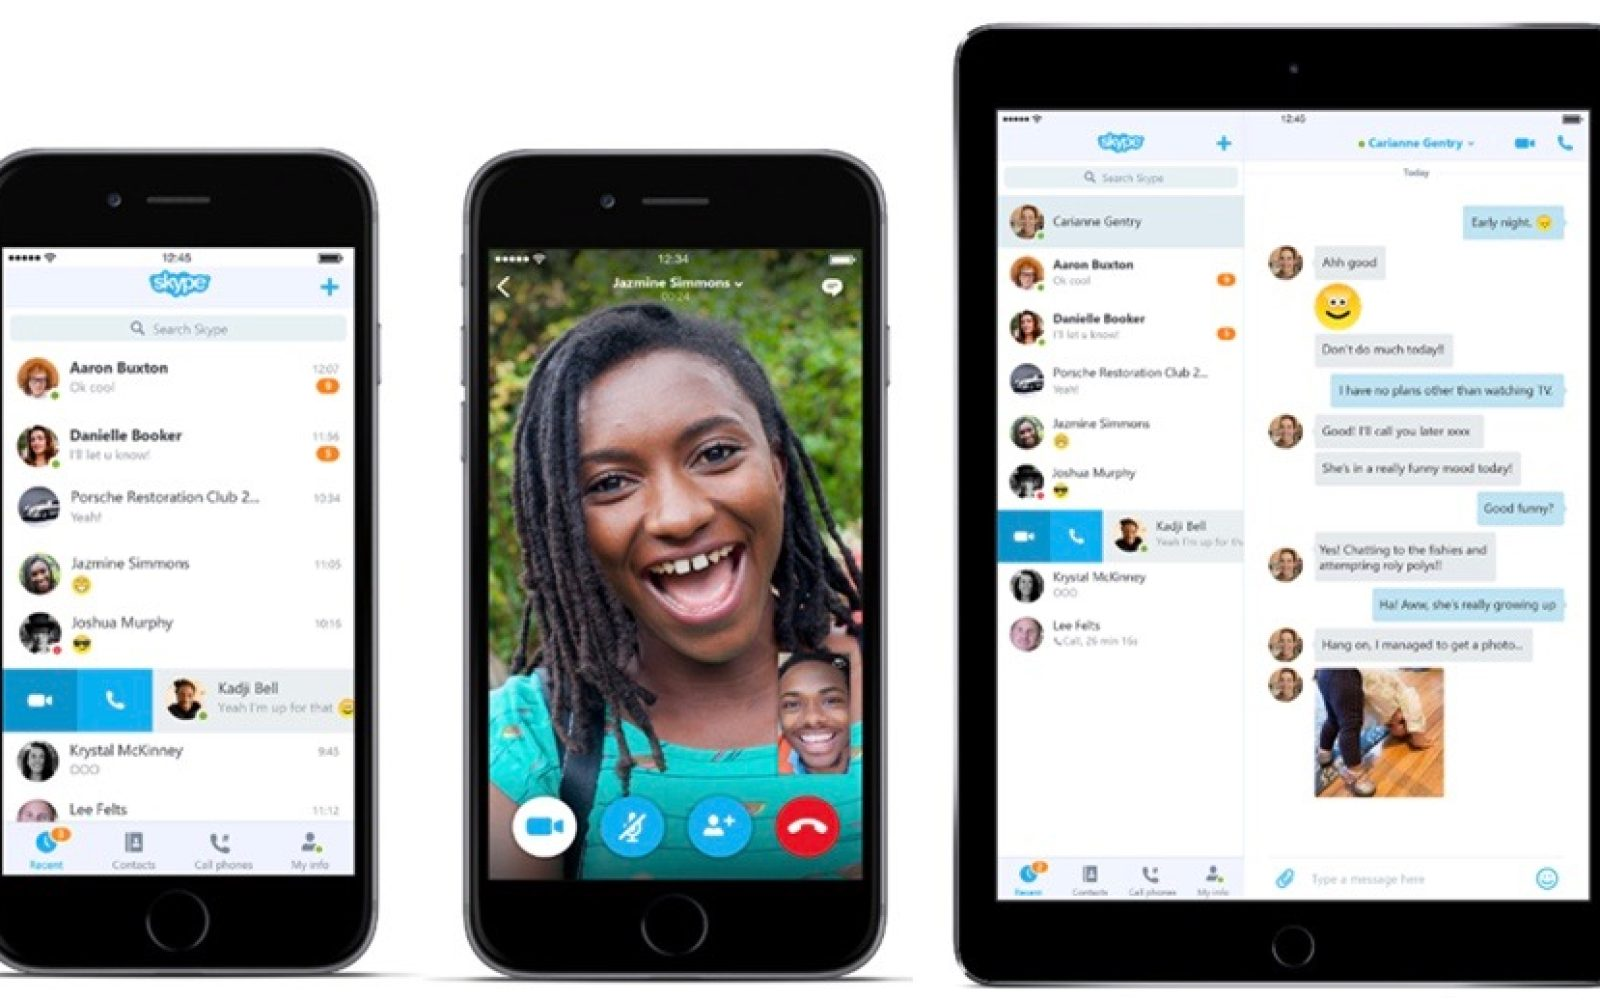 Skype 6 for iPhone and iPad brings simpler navigation in